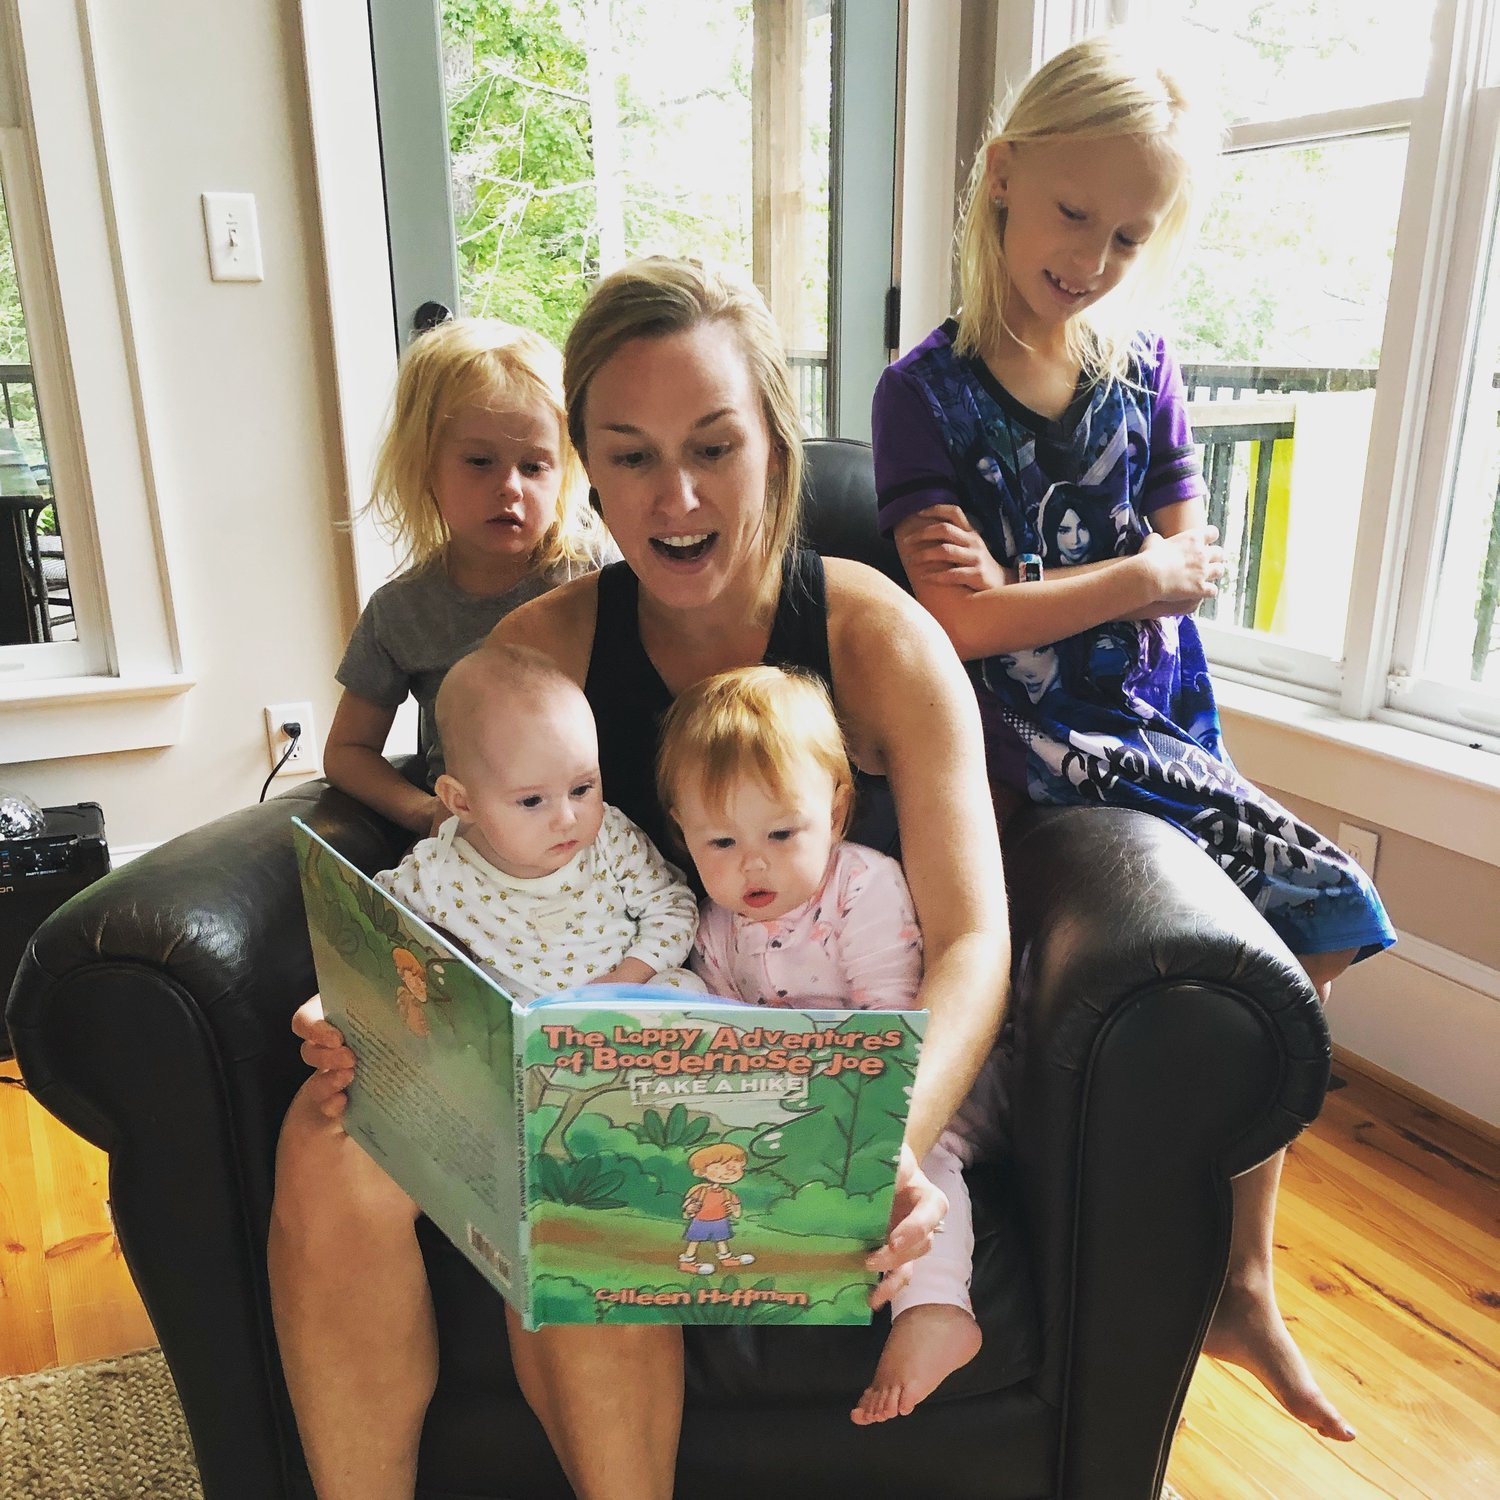 Colleen Hoffman, center, reads to toddlers Charlie Hughes (left) and Claire Hoffman (right) while the older girls, Margaret Hoffman (left) and Caroline Green (right) look on.